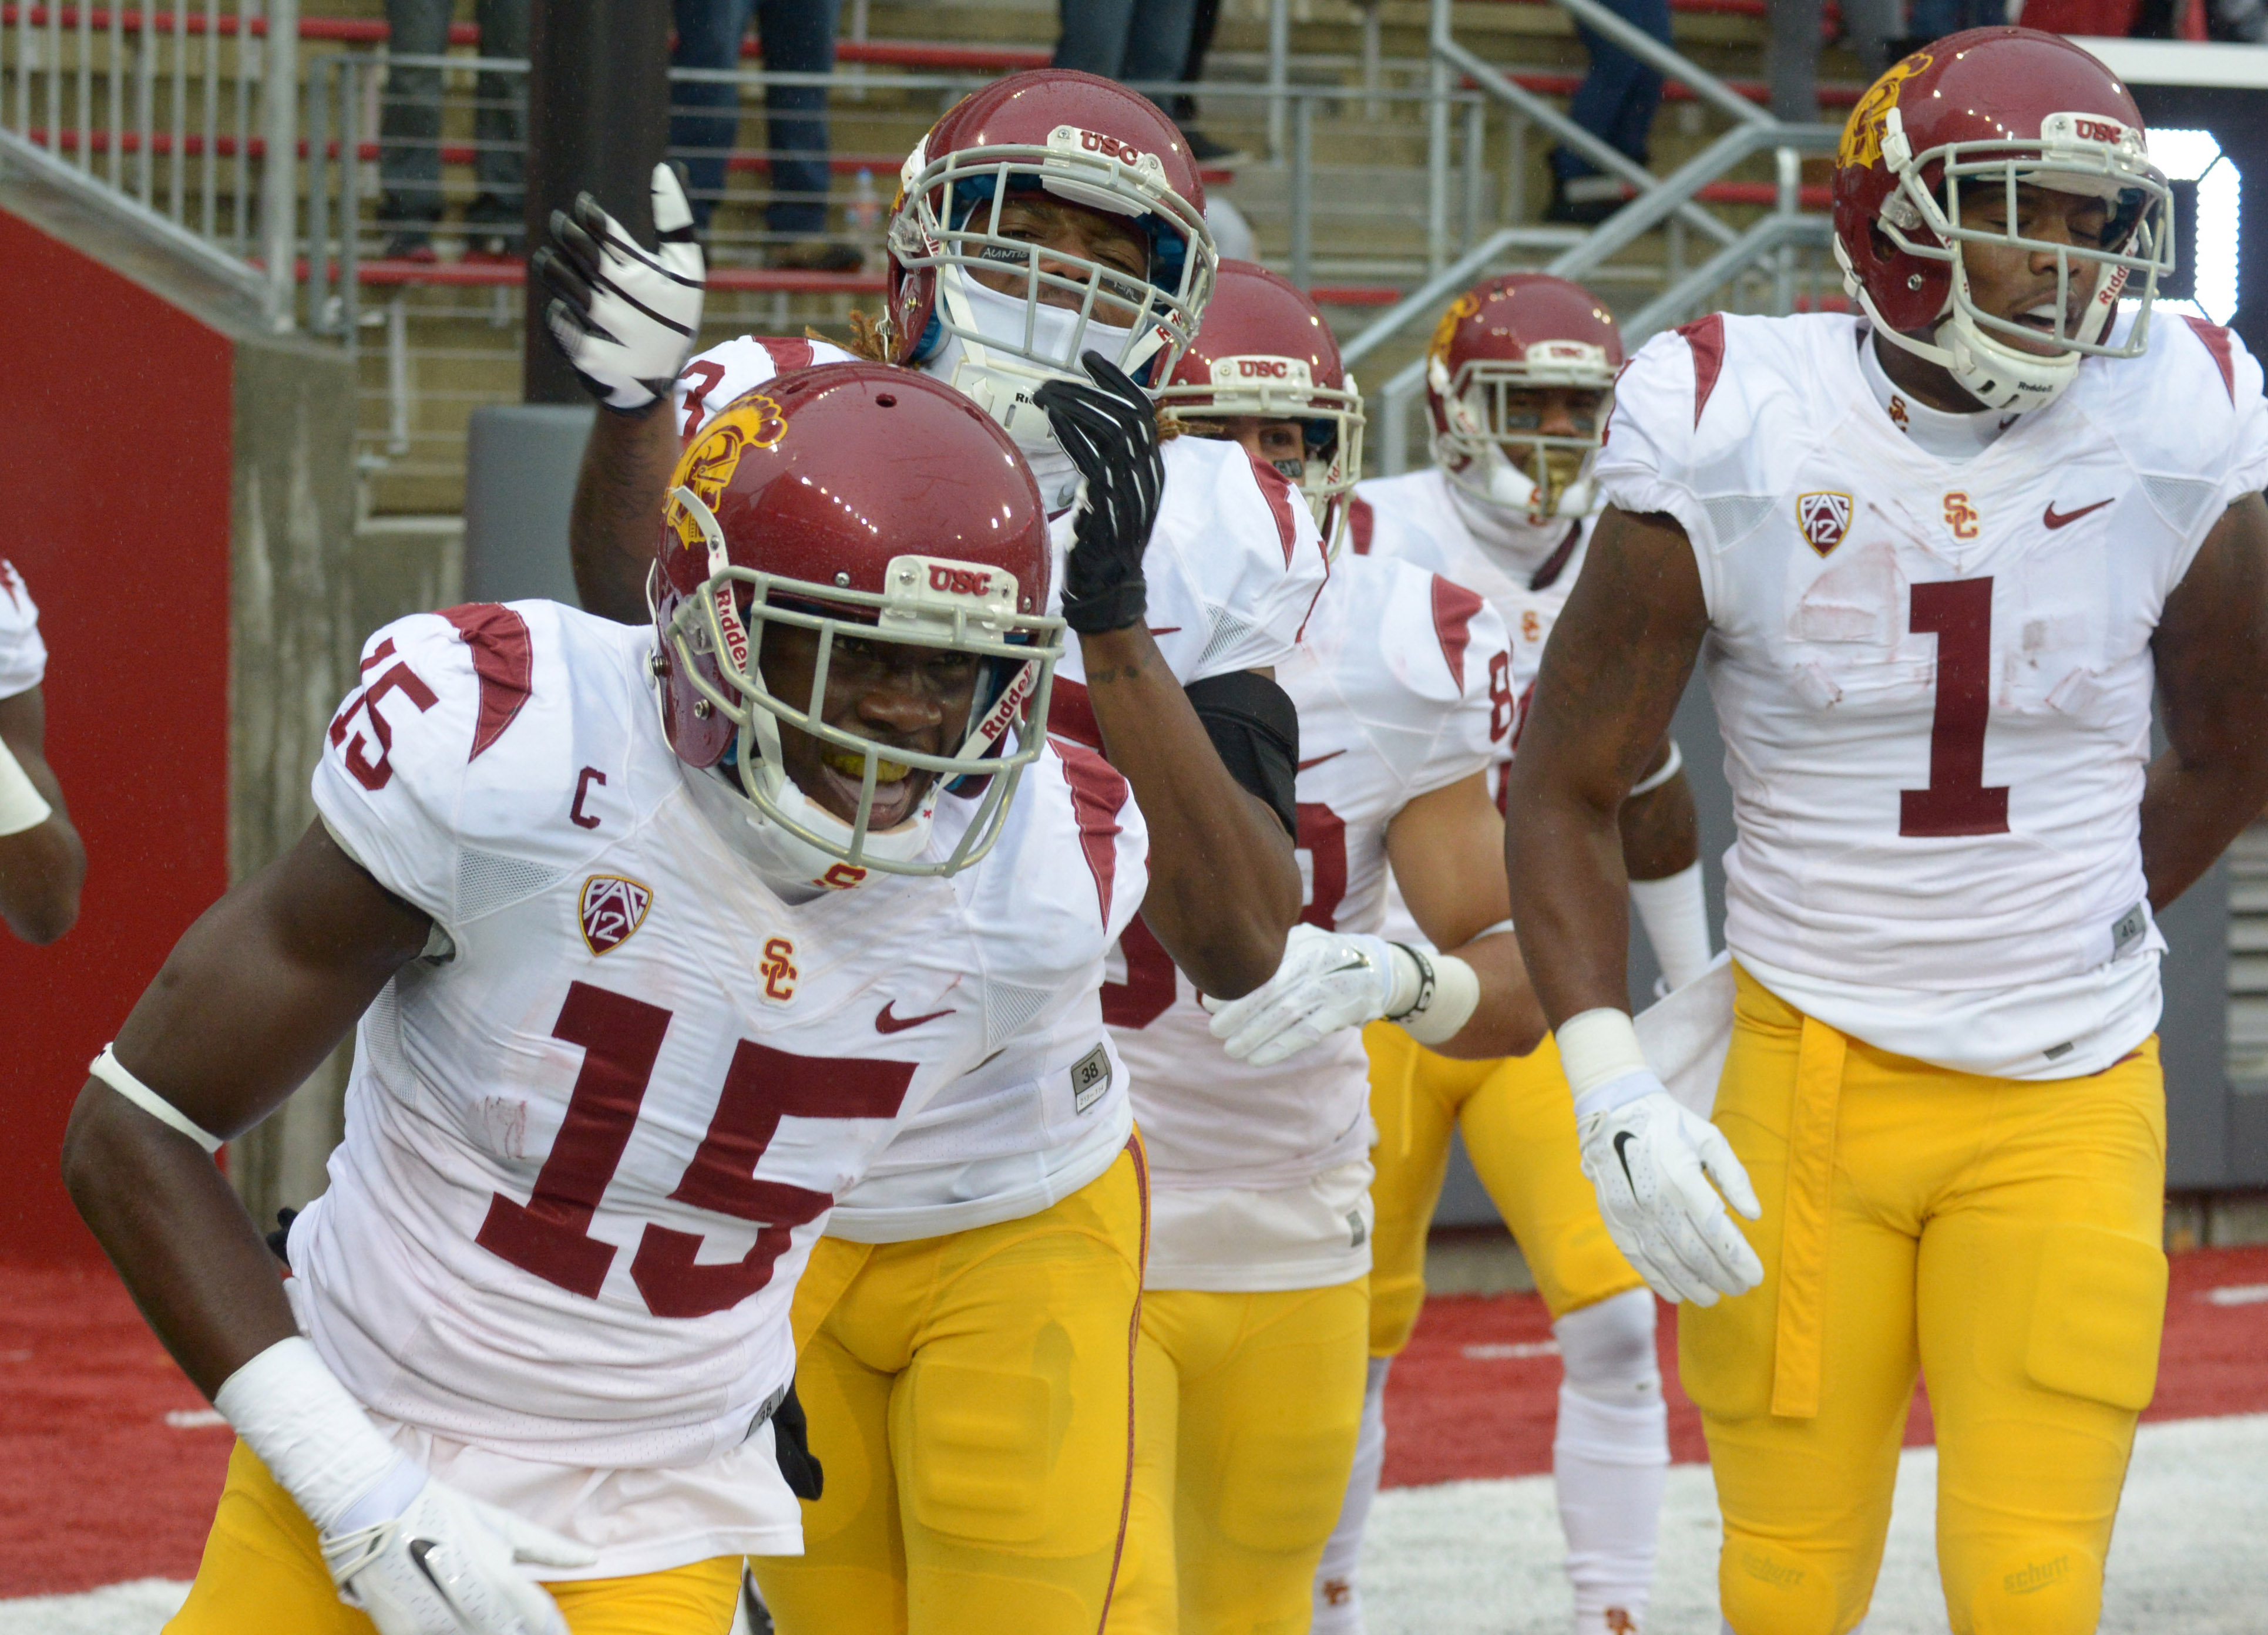 The Trojans want to finally strap it up for the Bowl Game.